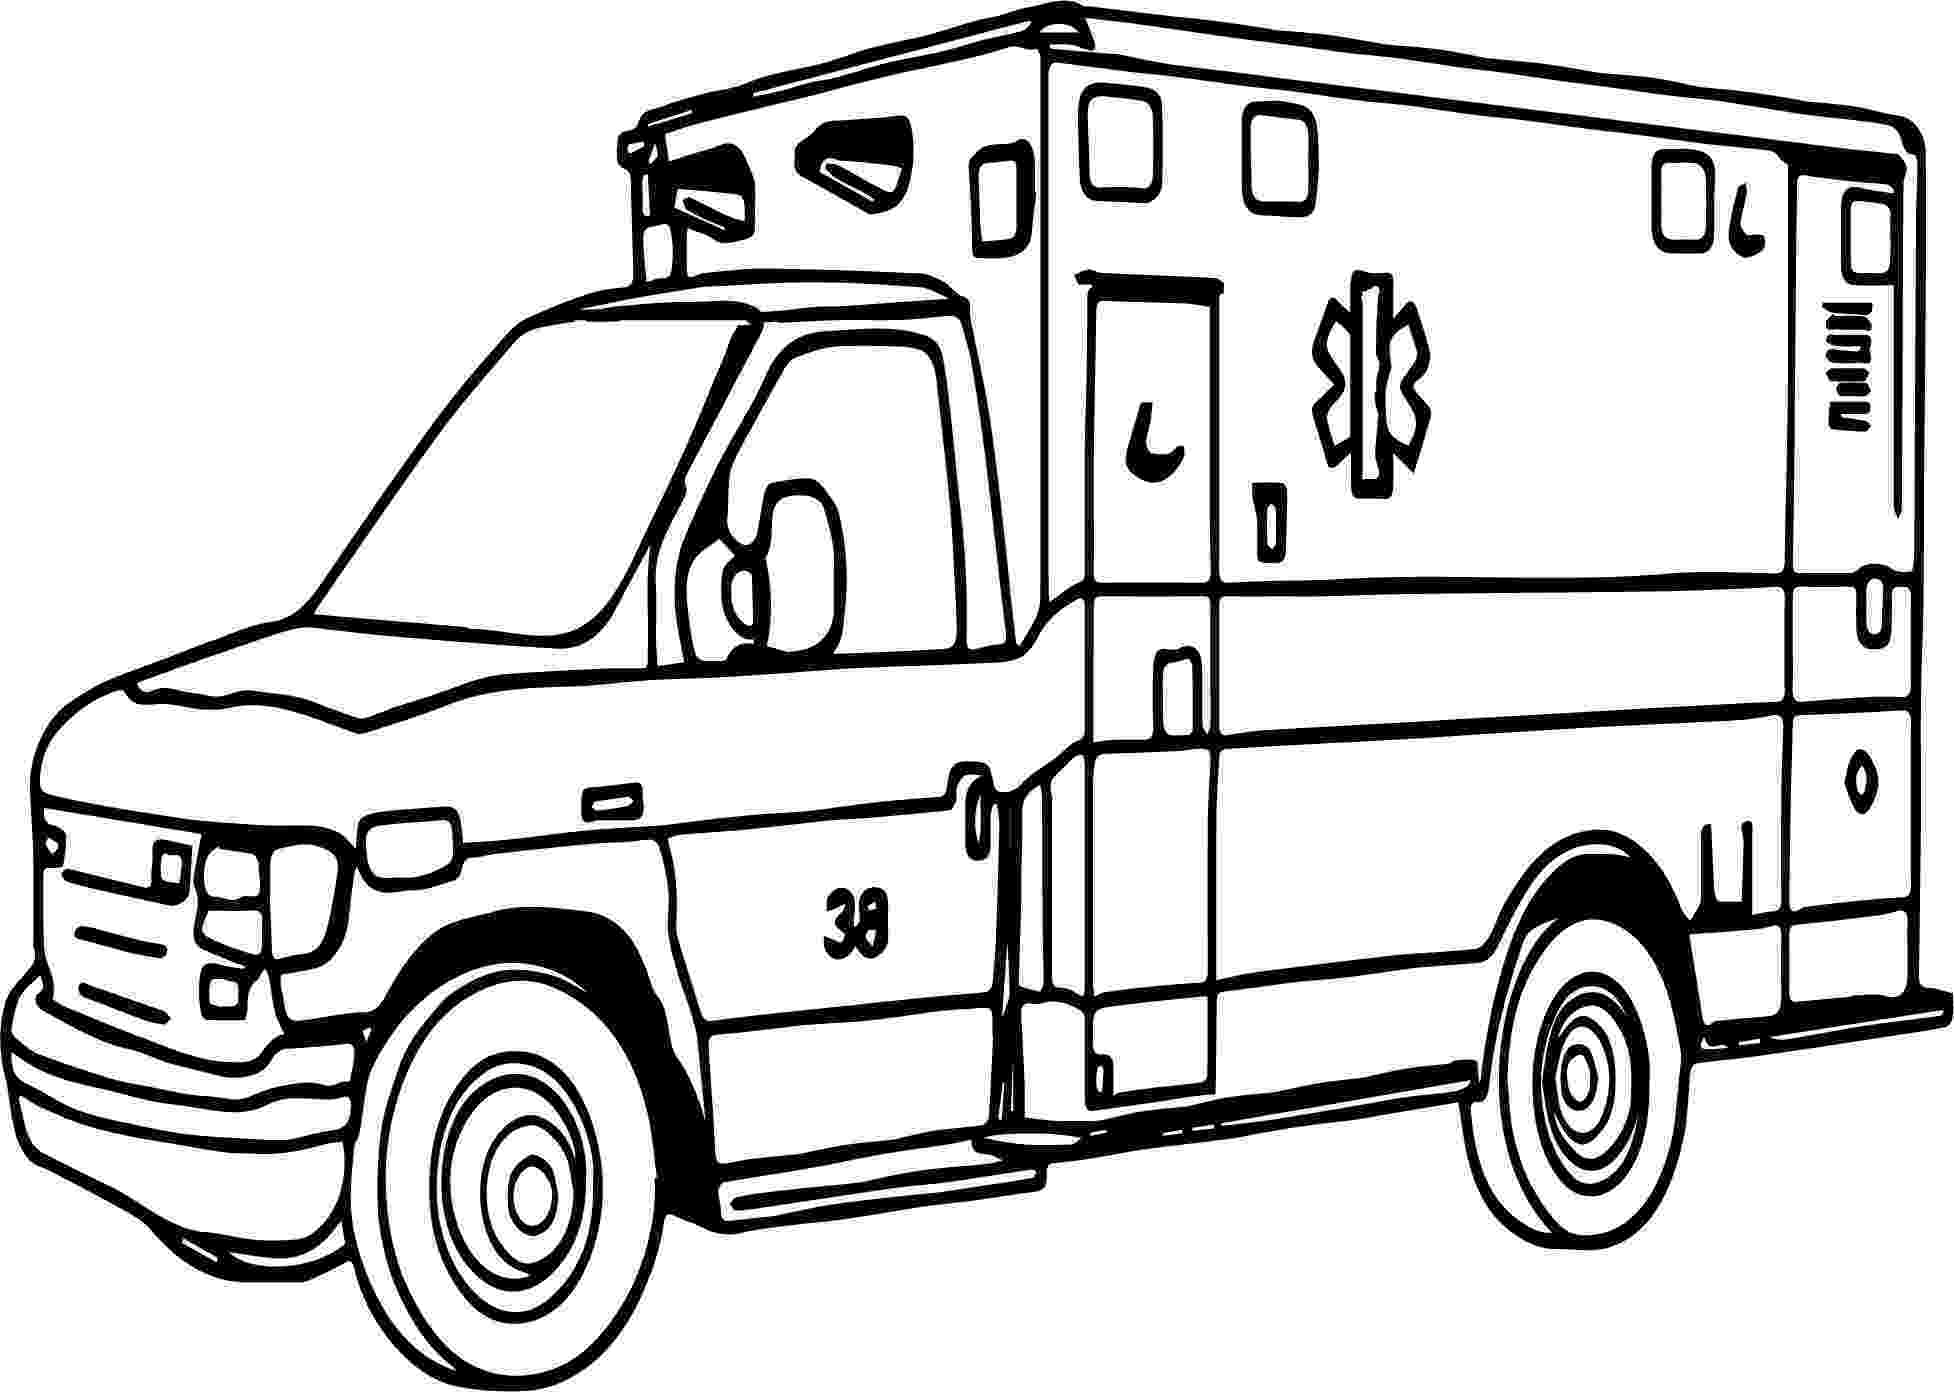 ambulance colouring pages ambulance coloring pages to download and print for free pages ambulance colouring